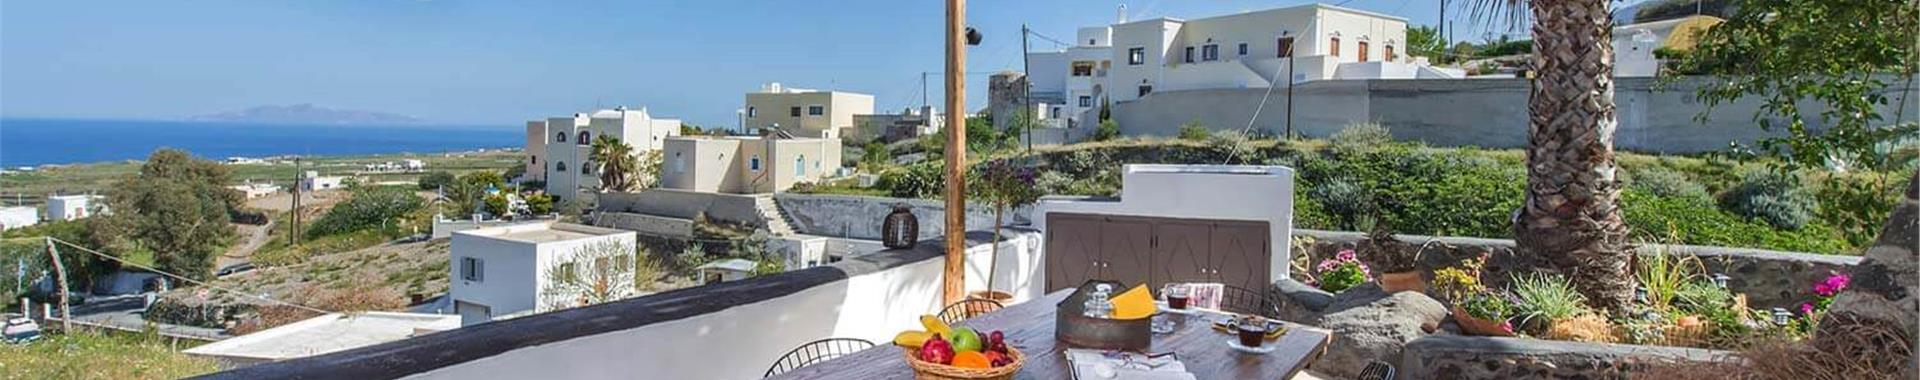 Vourvoulos Vourvoulos Hotels in Santorini island, Greece